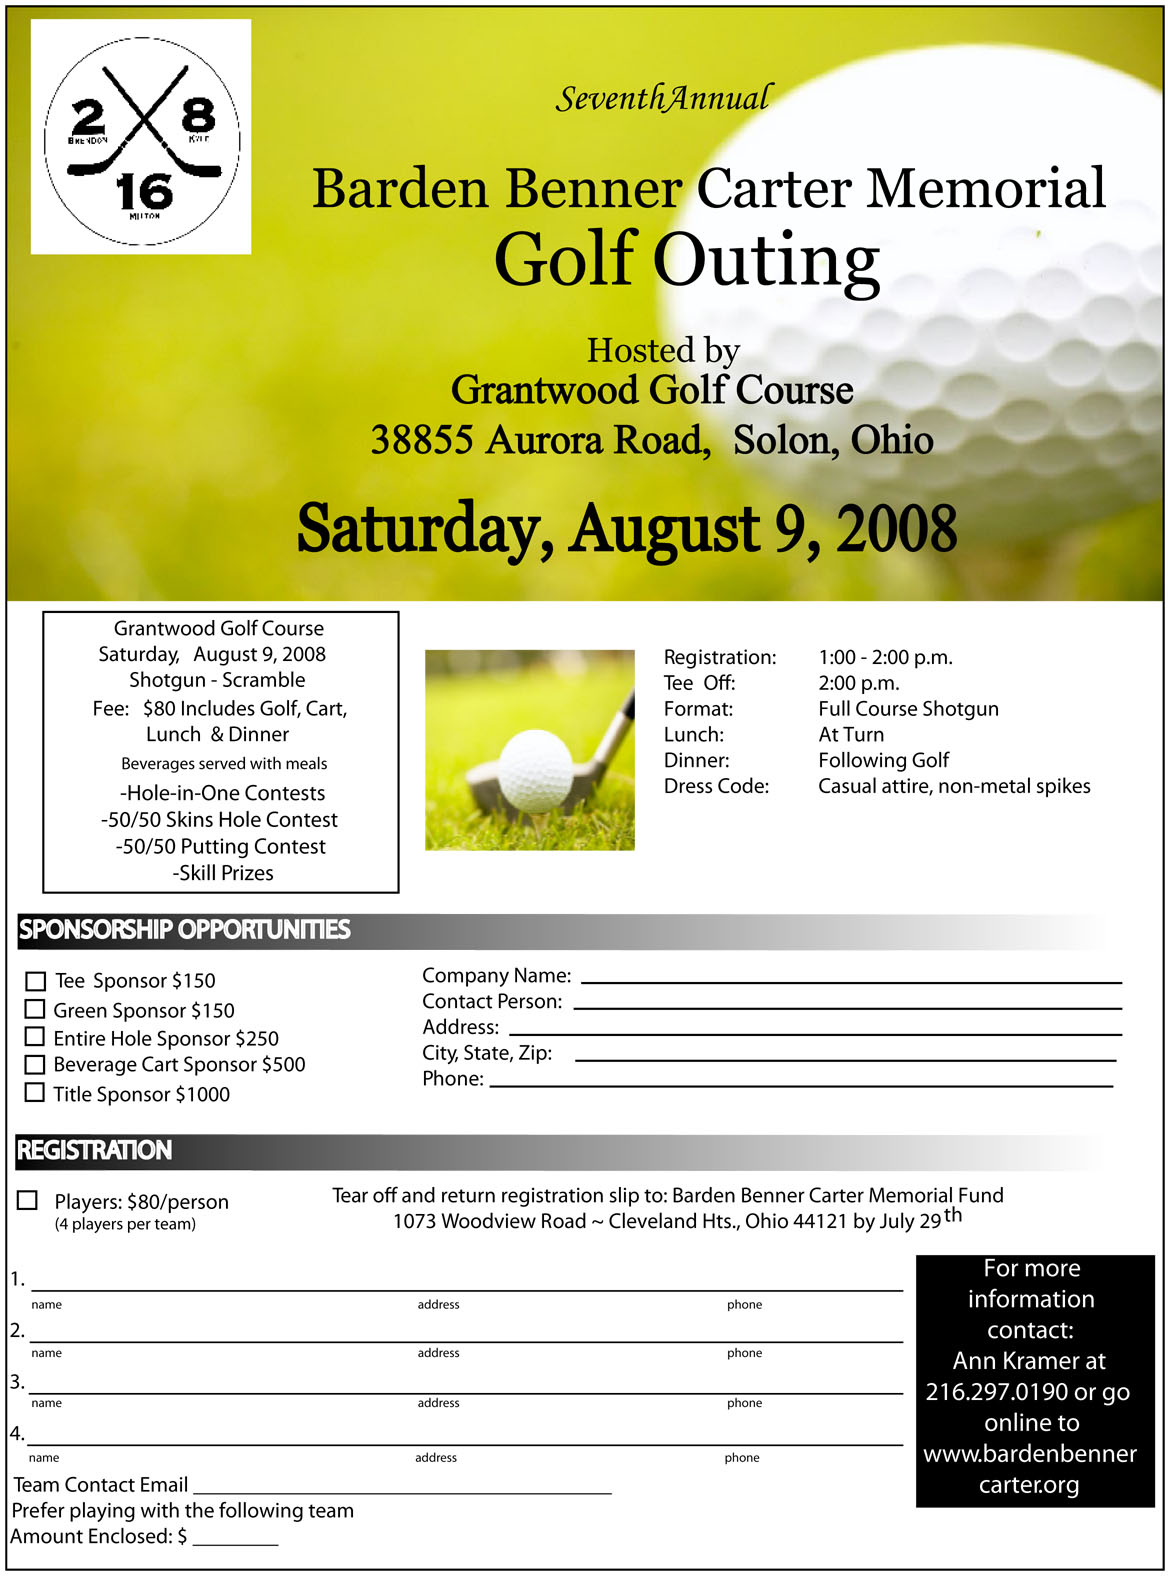 2007 BBC Golf Outing